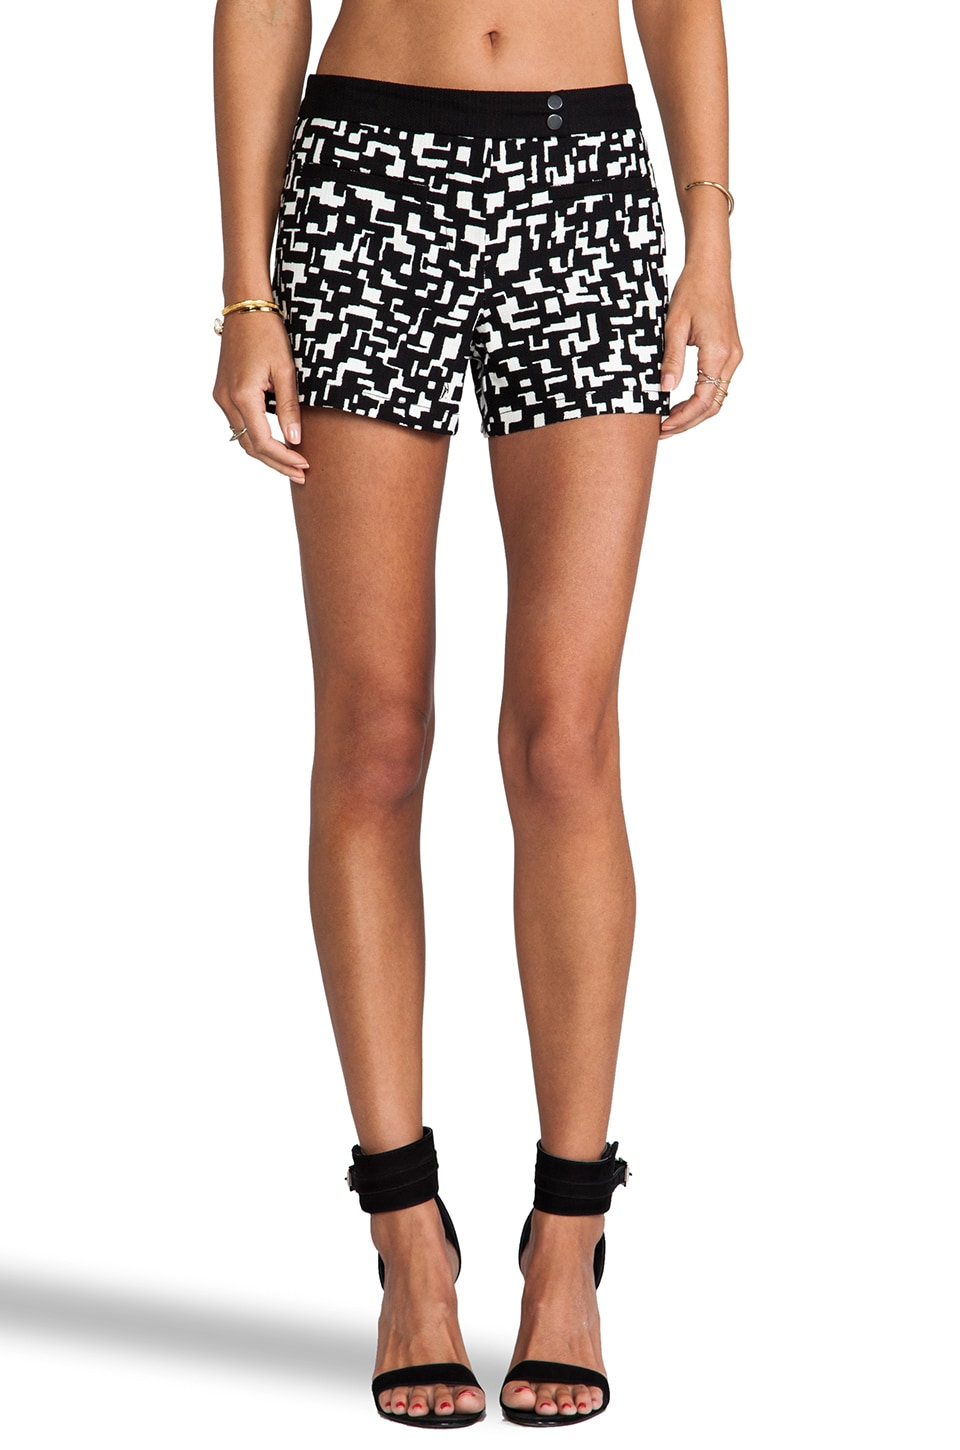 Trina Turk Elma Shorts in Black Print